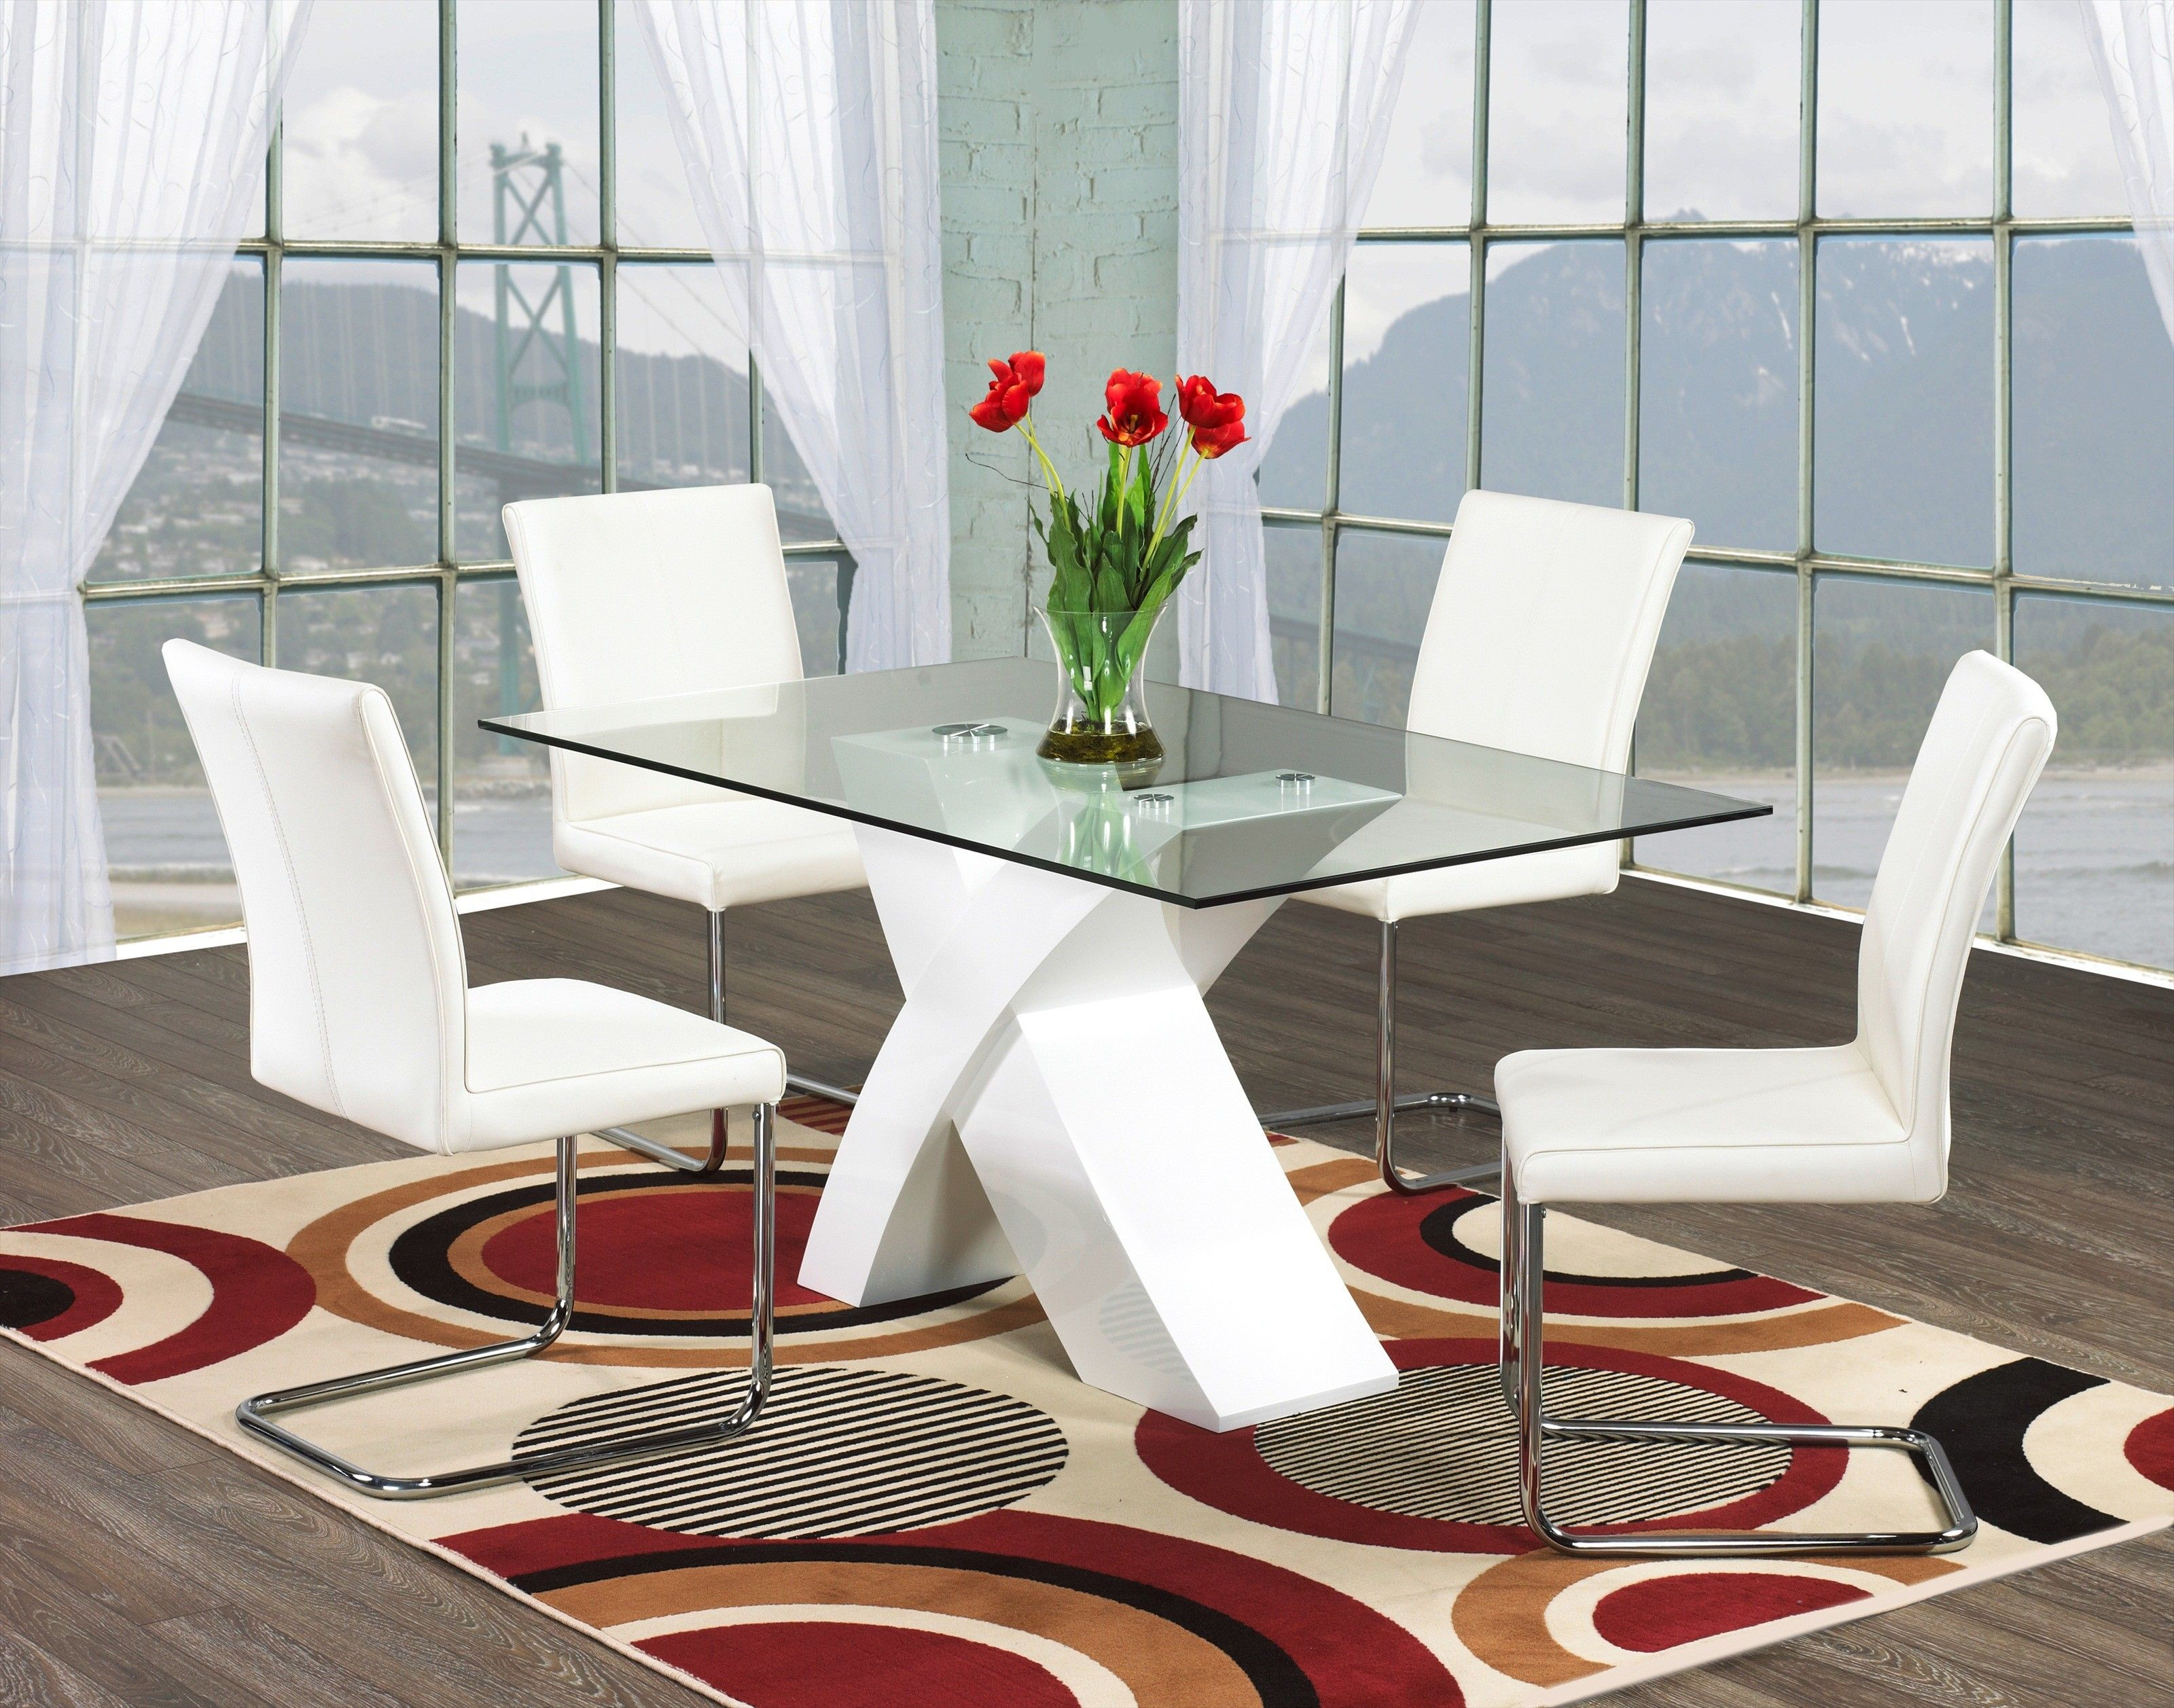 Modern White Lacquer  Arrow Furniture  Home Decor  Pinterest Unique White Dining Room Table With Bench And Chairs Design Inspiration